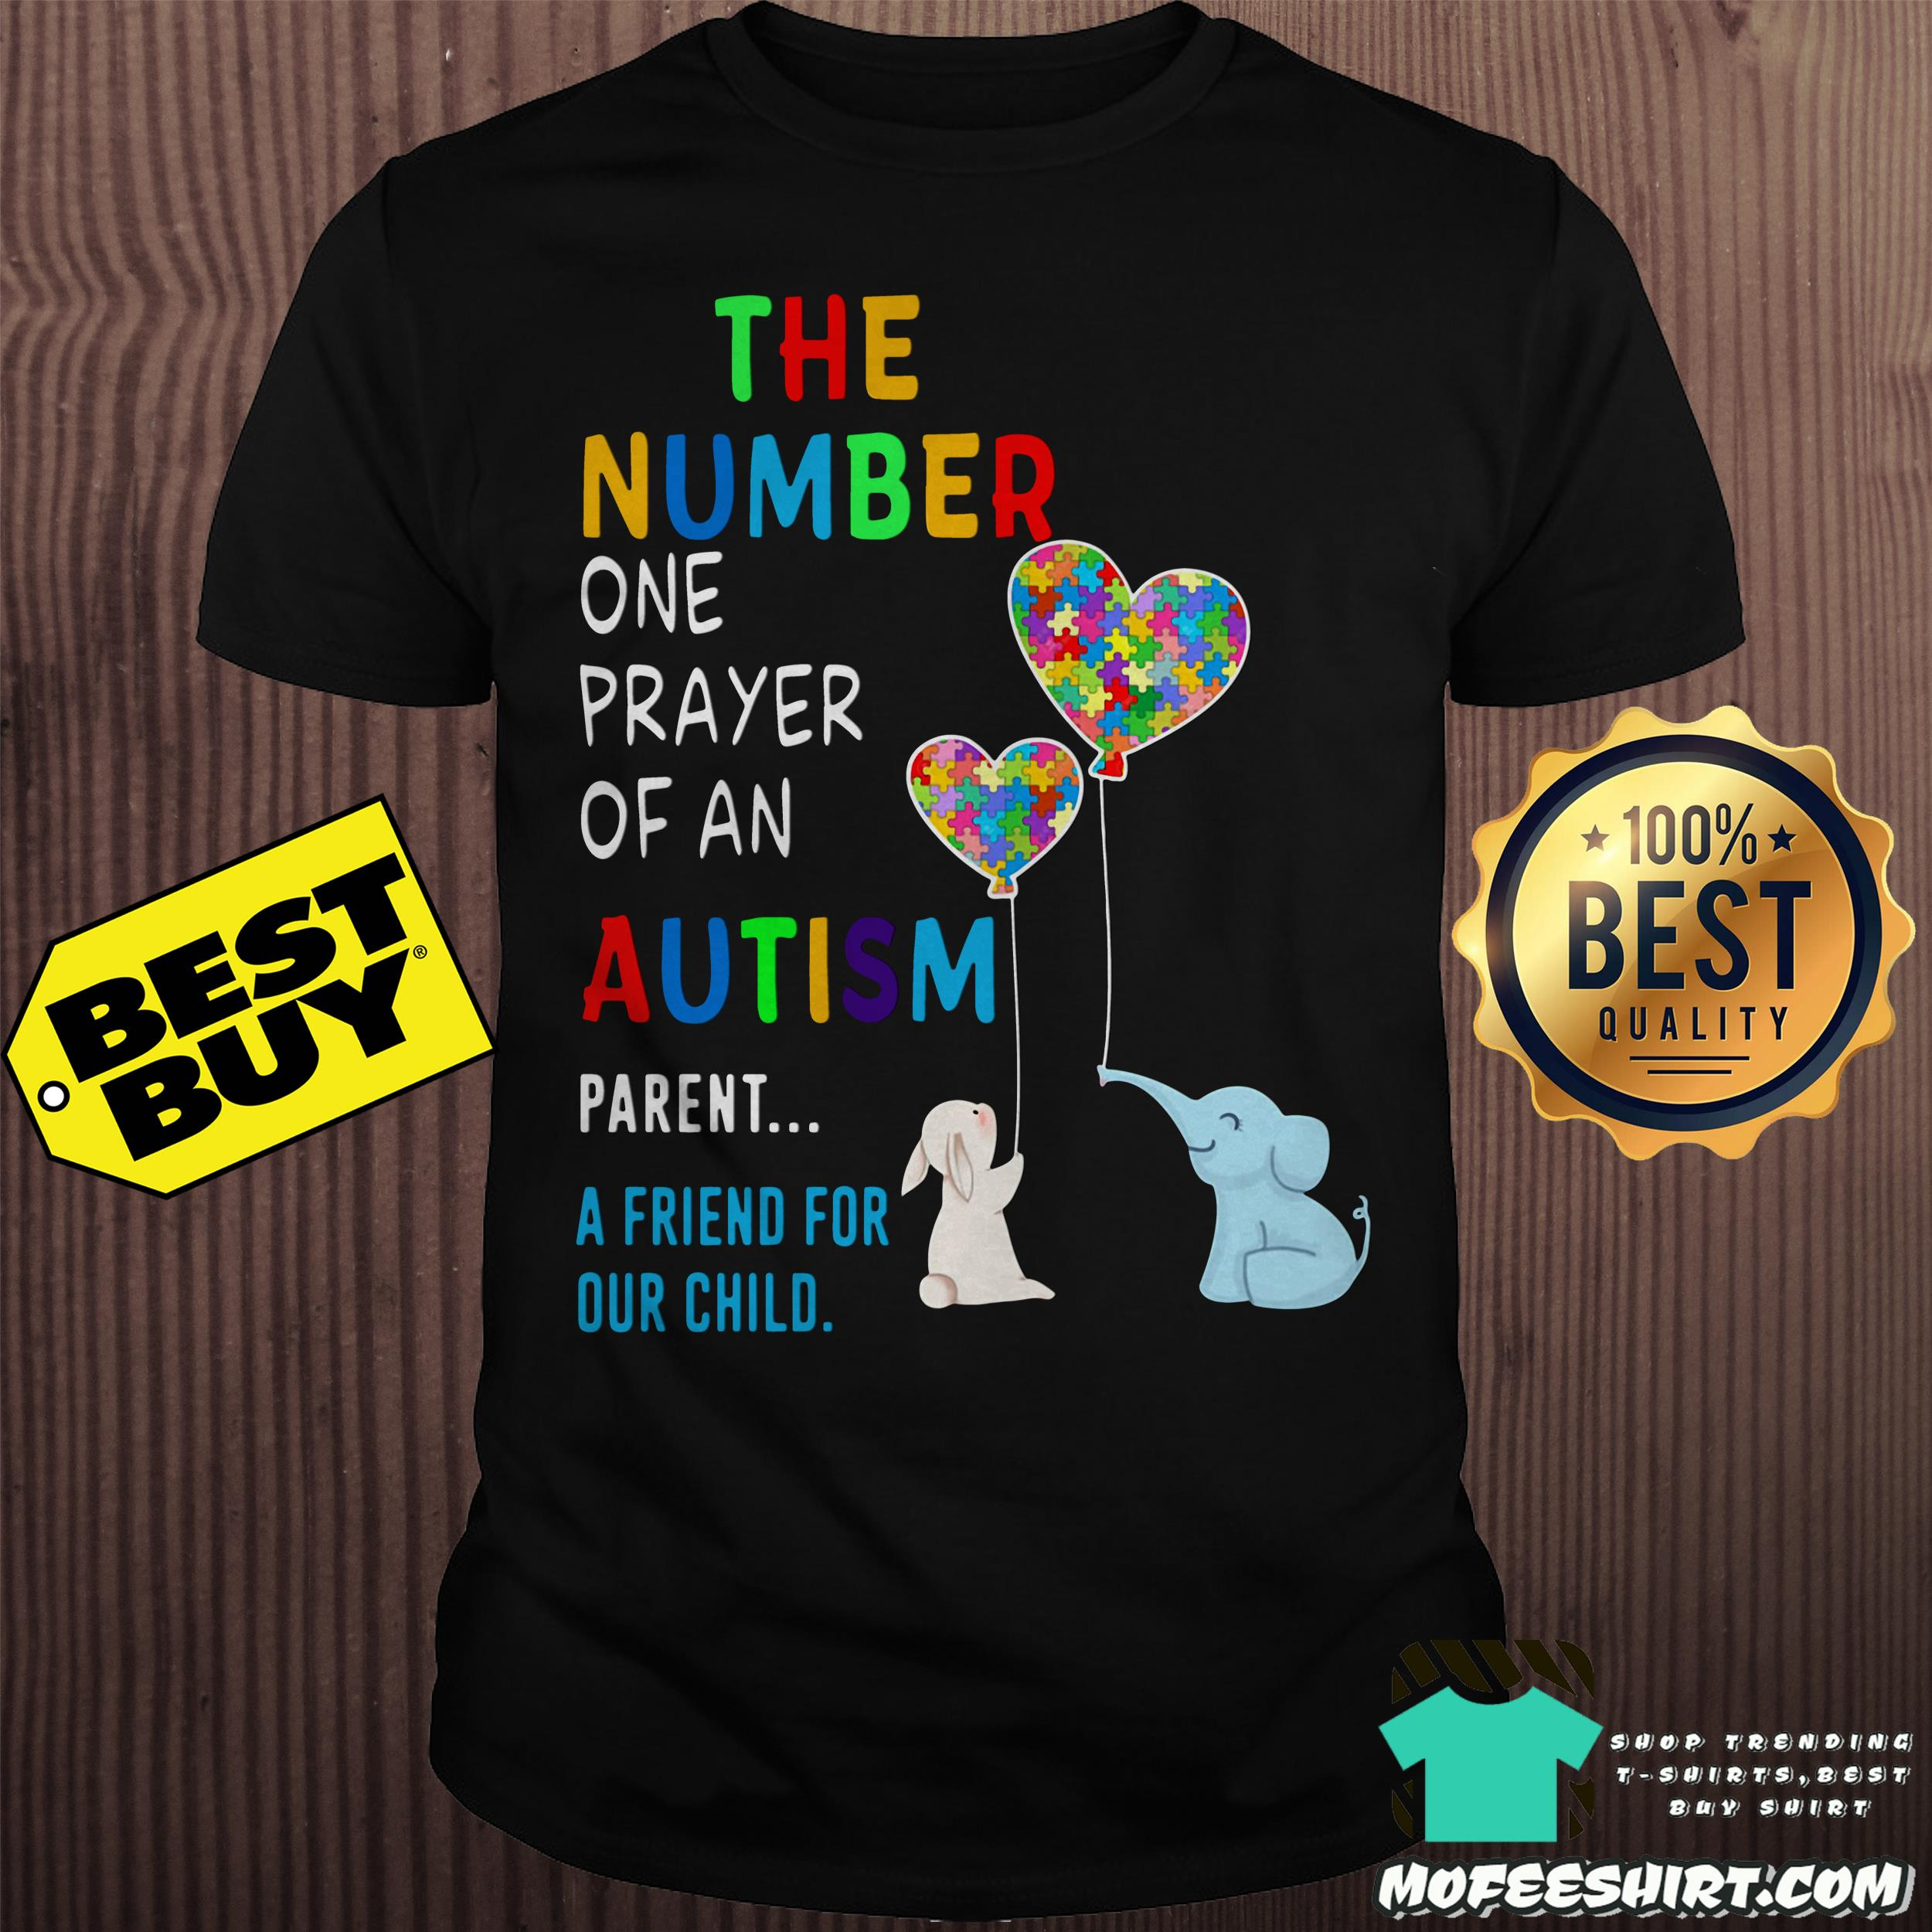 [Sale 20%] Official The Number One Prayer Of An Autism